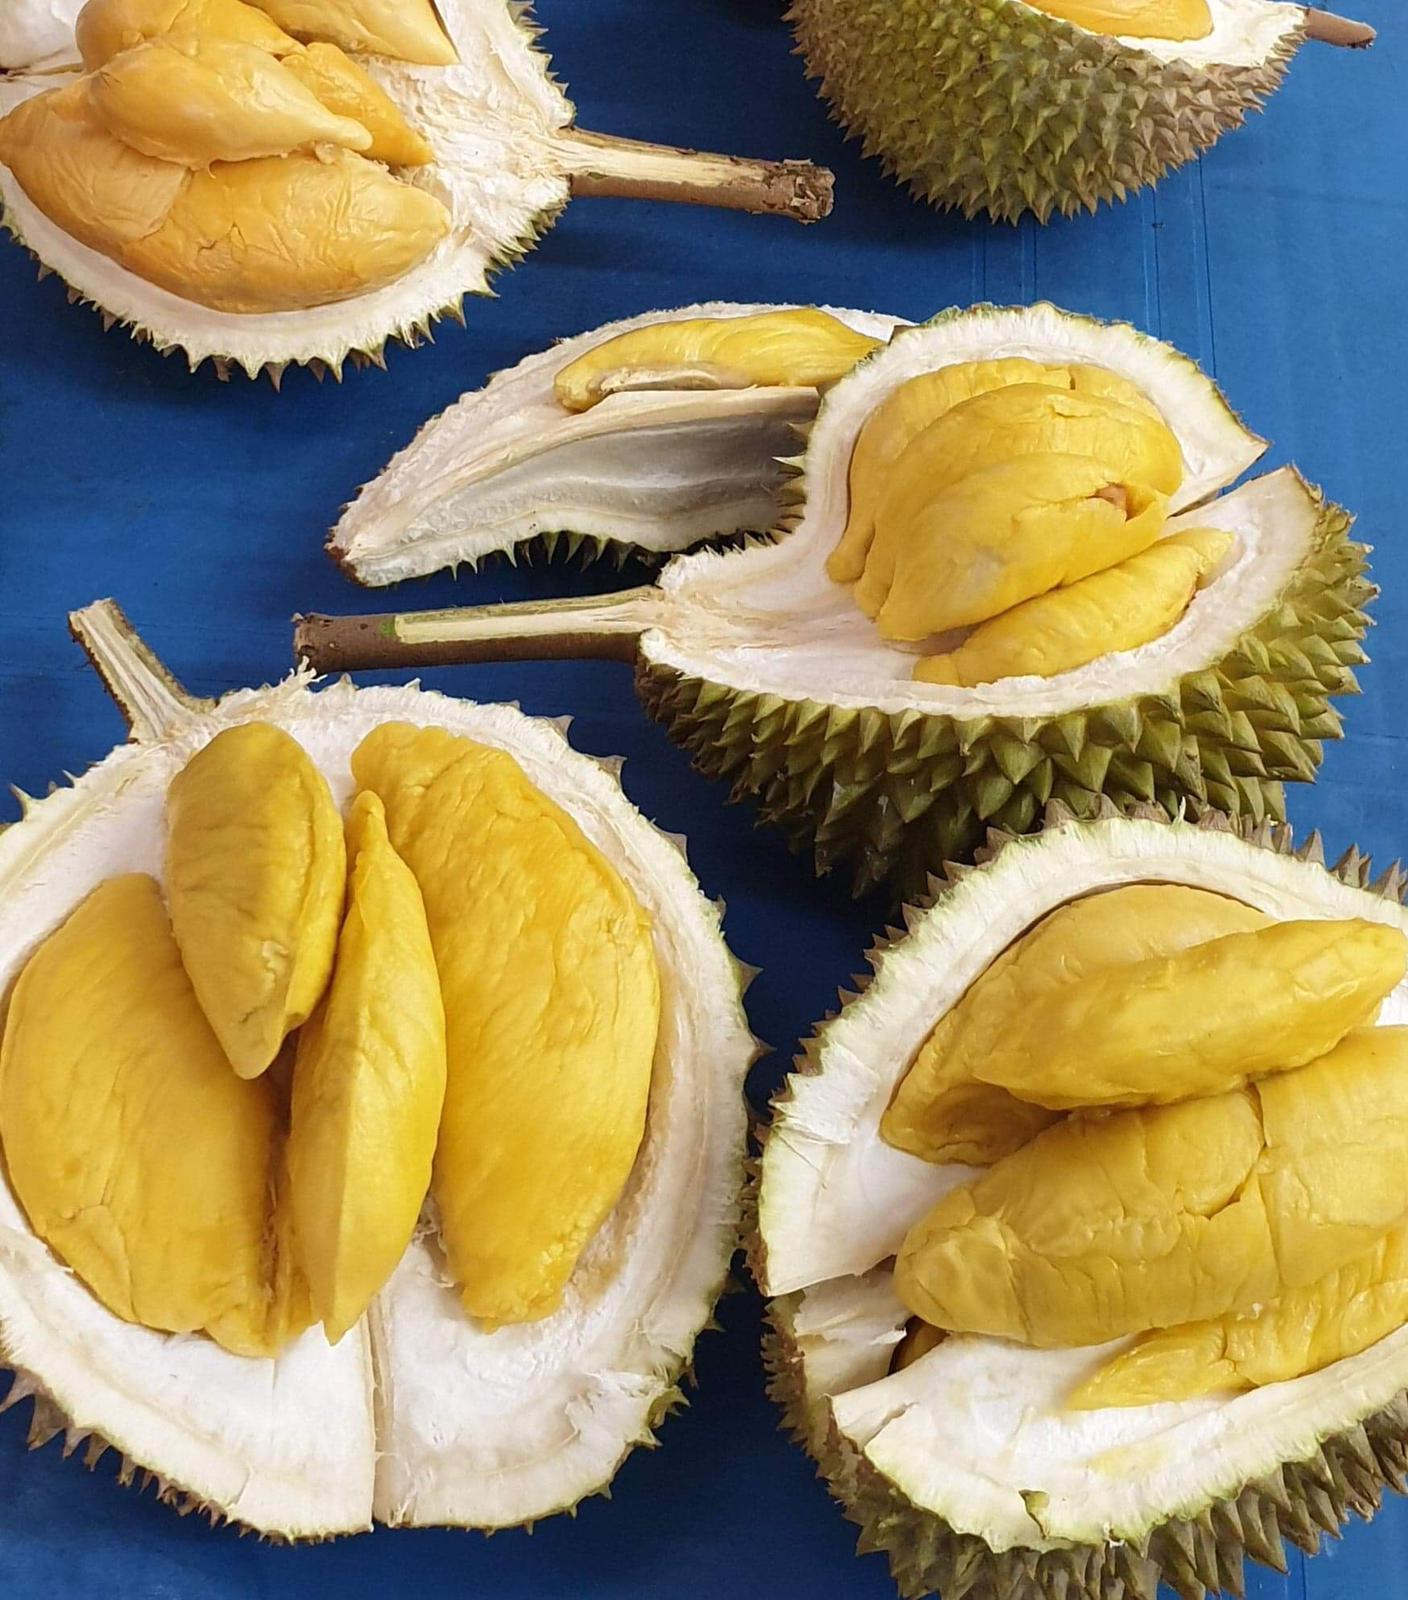 durian pricing and types | Durian Express Delivery